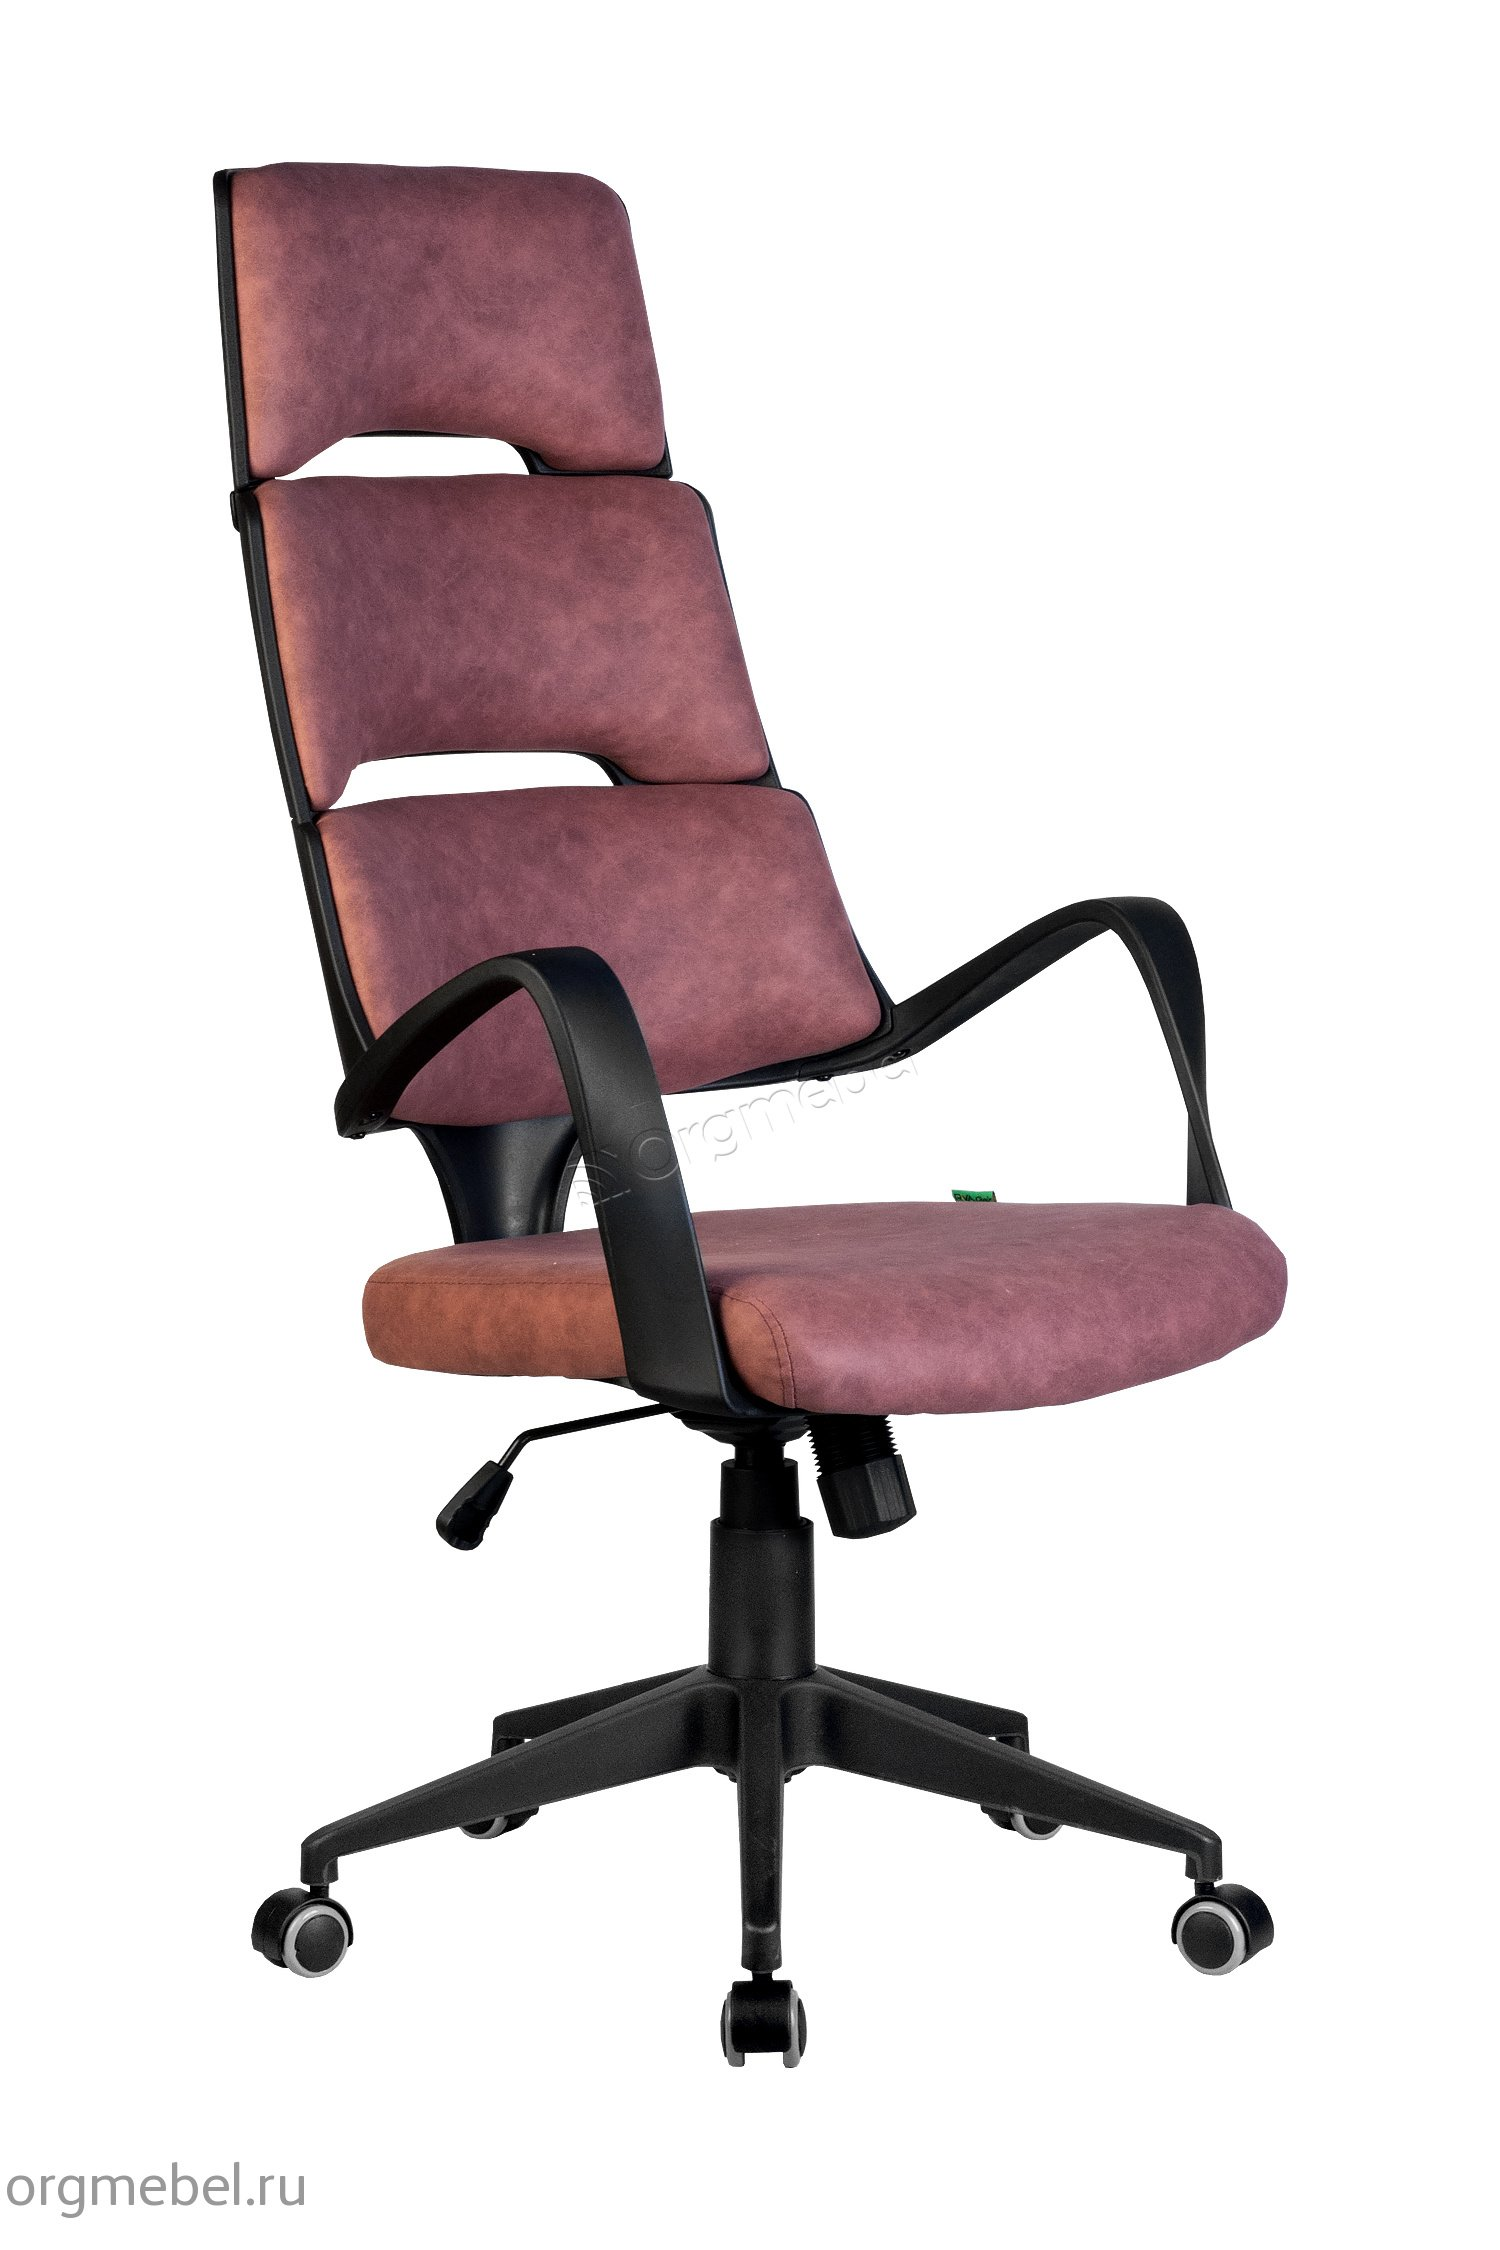 Кресло Riva Chair SAKURA (чёрный пластик)-ТТ-Т, цвет Терракота, ткань, обивка Ткань